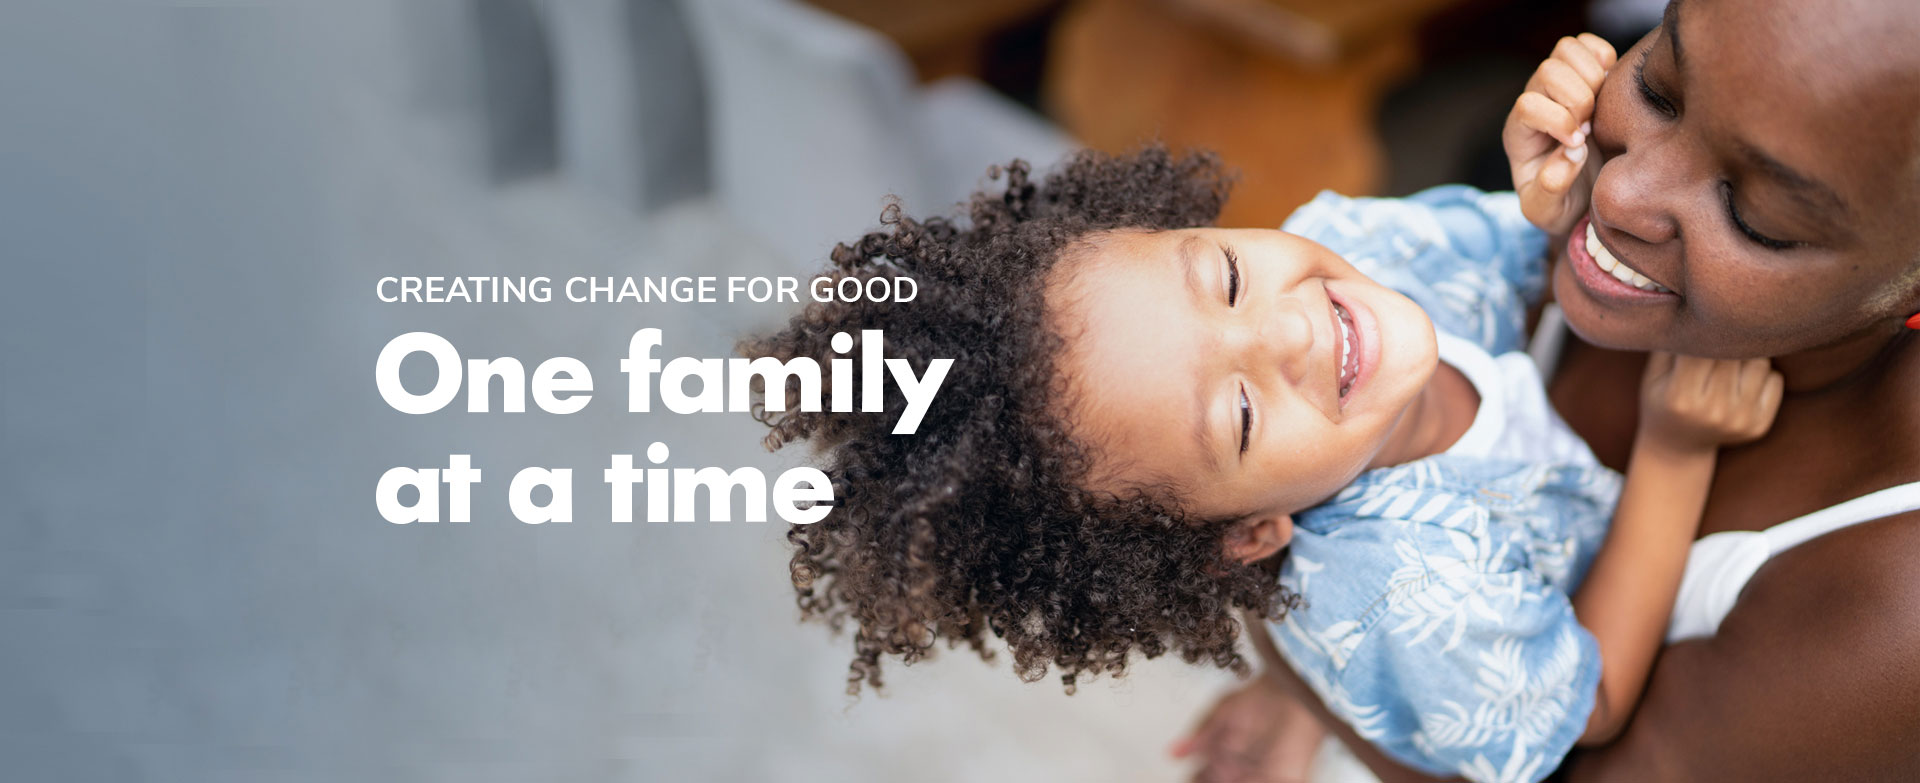 Family Support Services - lead child welfare agency for Duval and Nassau counties.